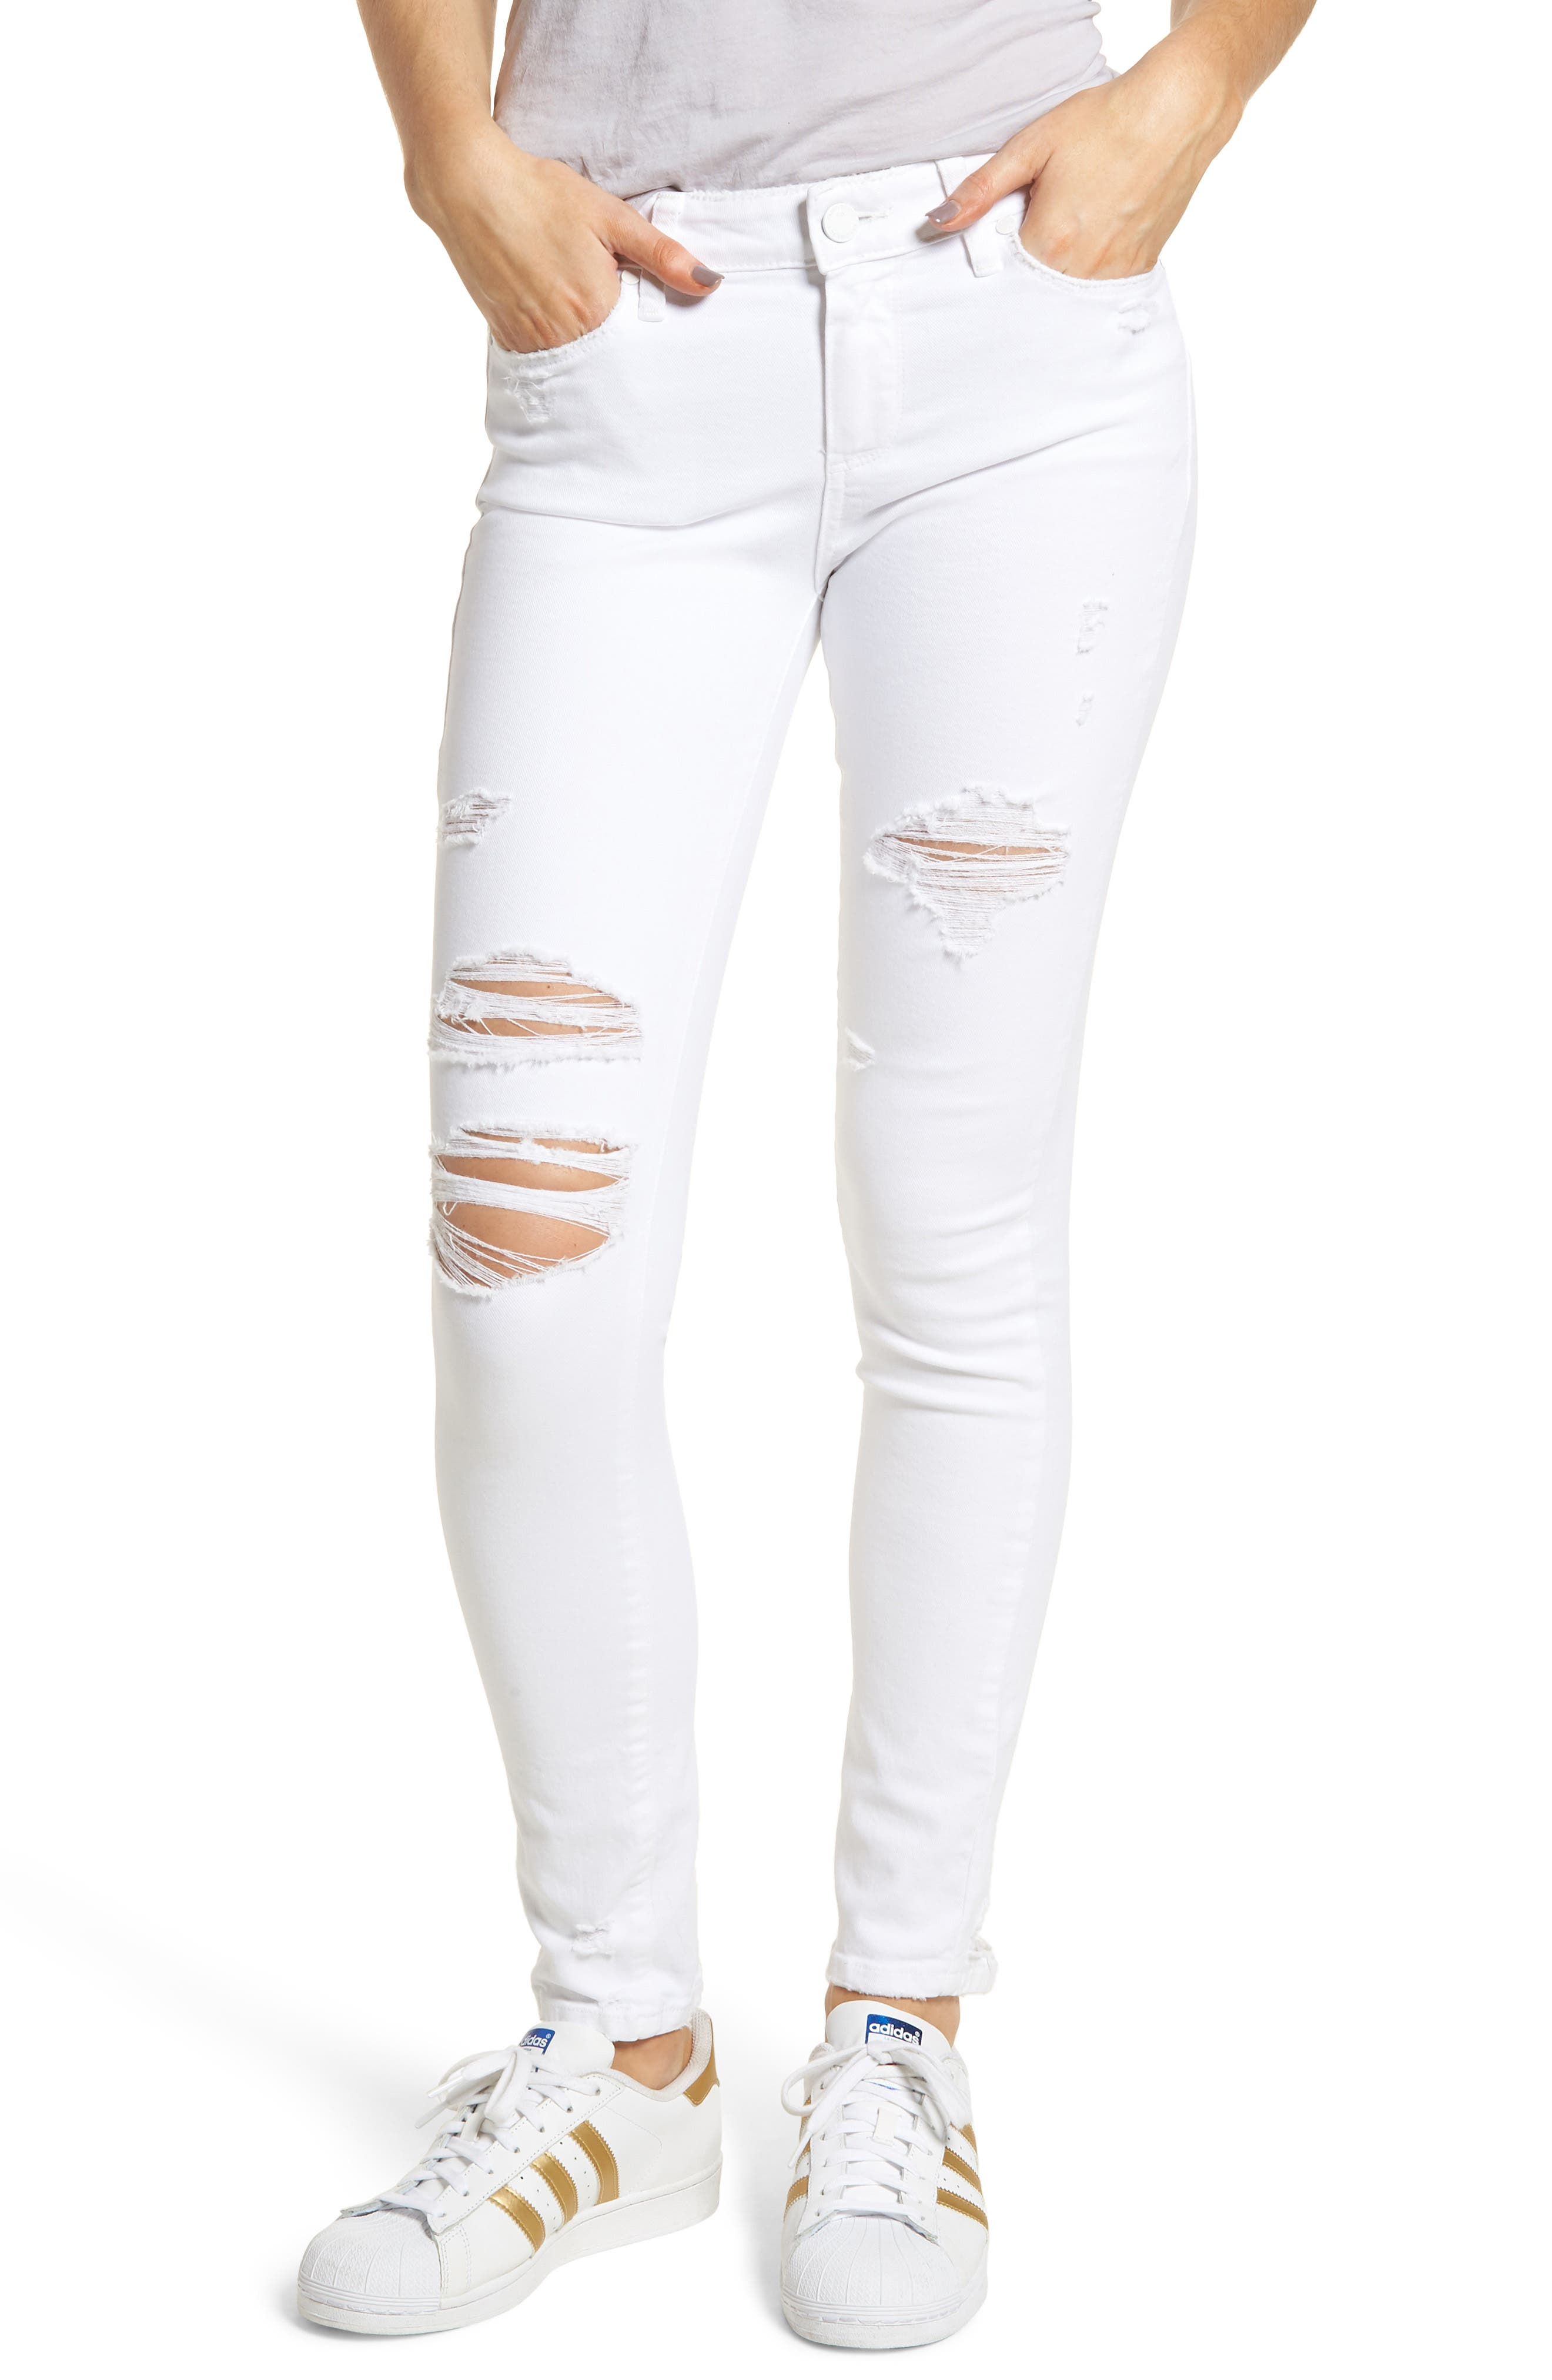 Verdugo Ripped Ultra Skinny Jeans,                             Main thumbnail 1, color,                             100